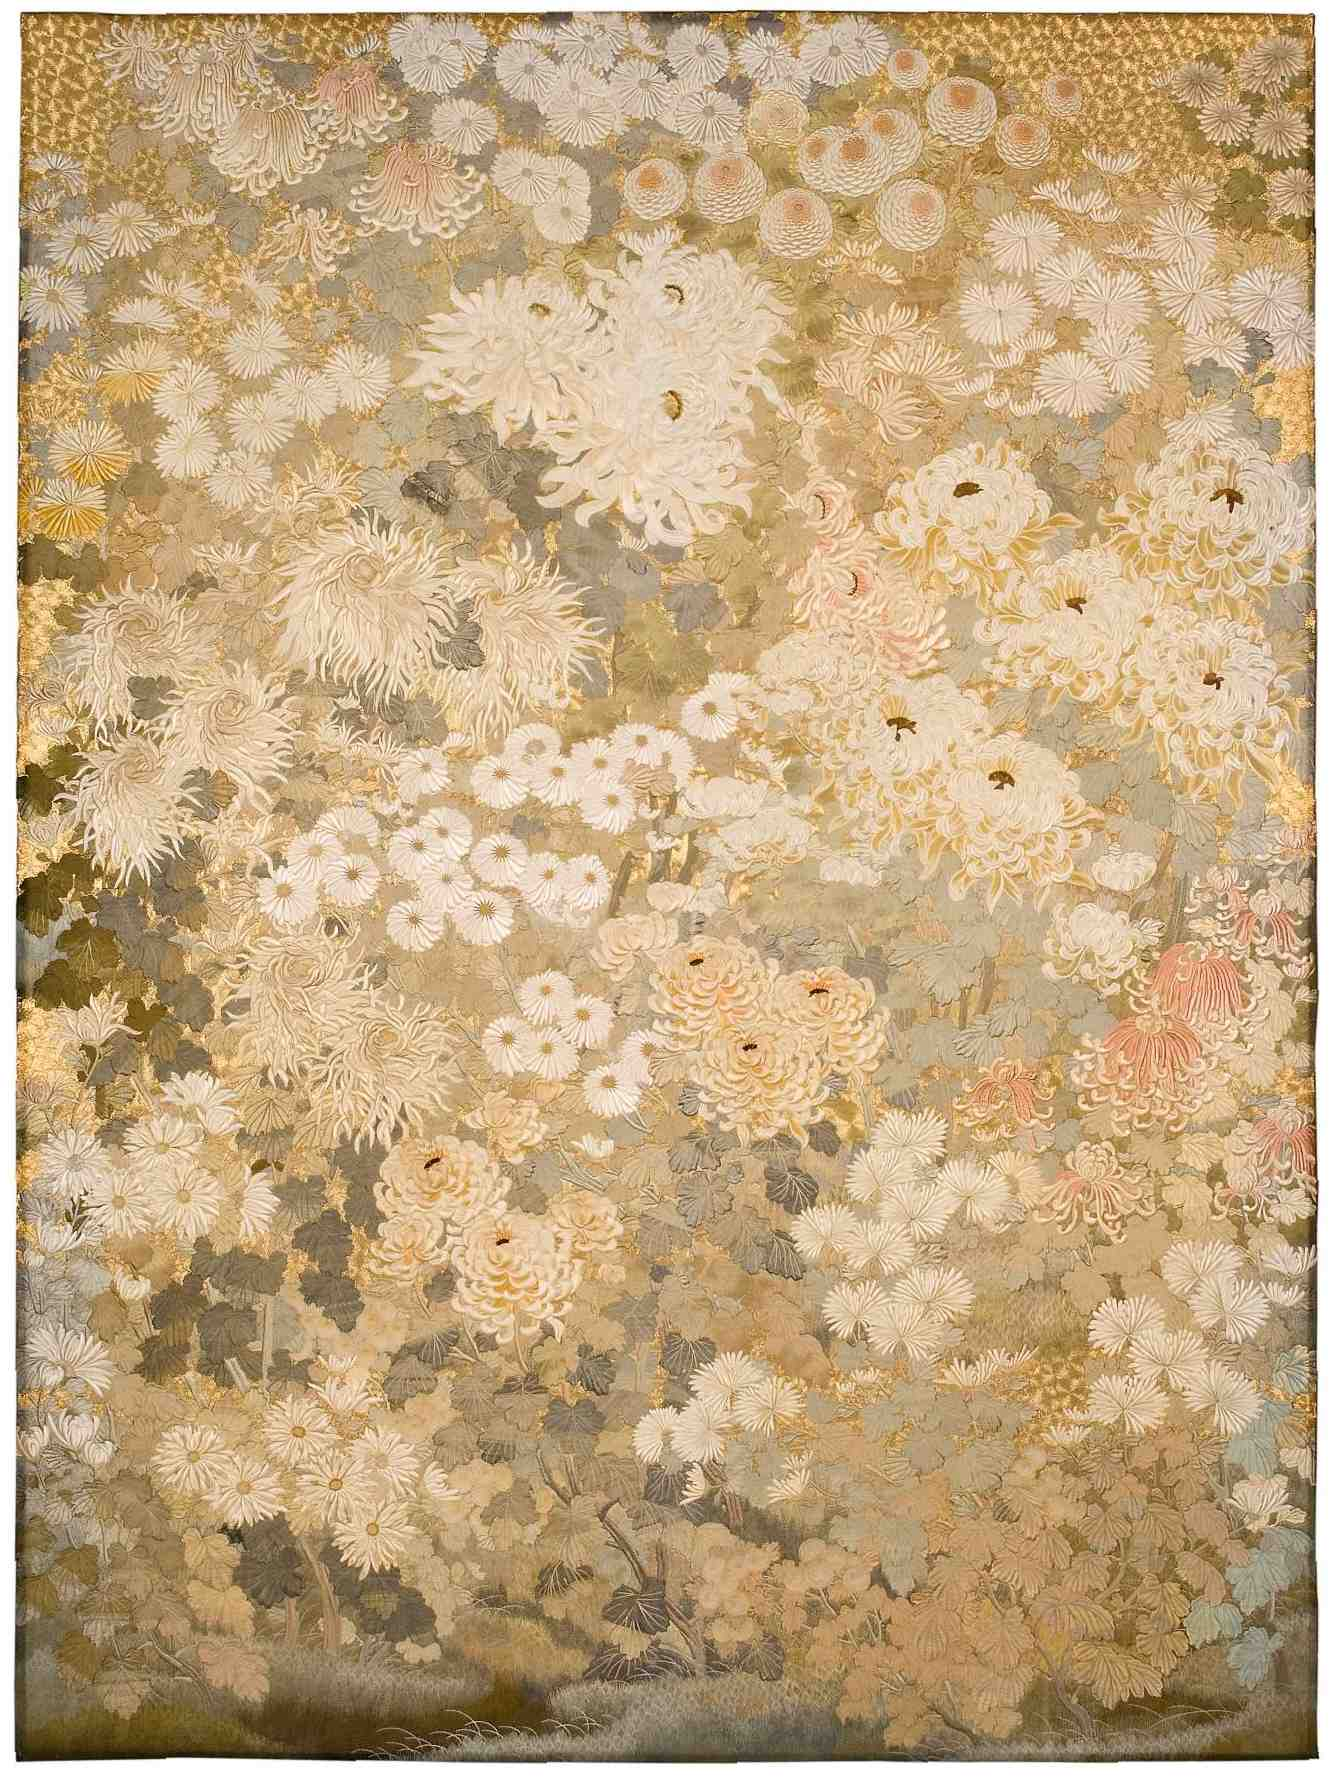 Mystery Behind a Grand Japanese Embroidered Tapestry in an English Palace 002